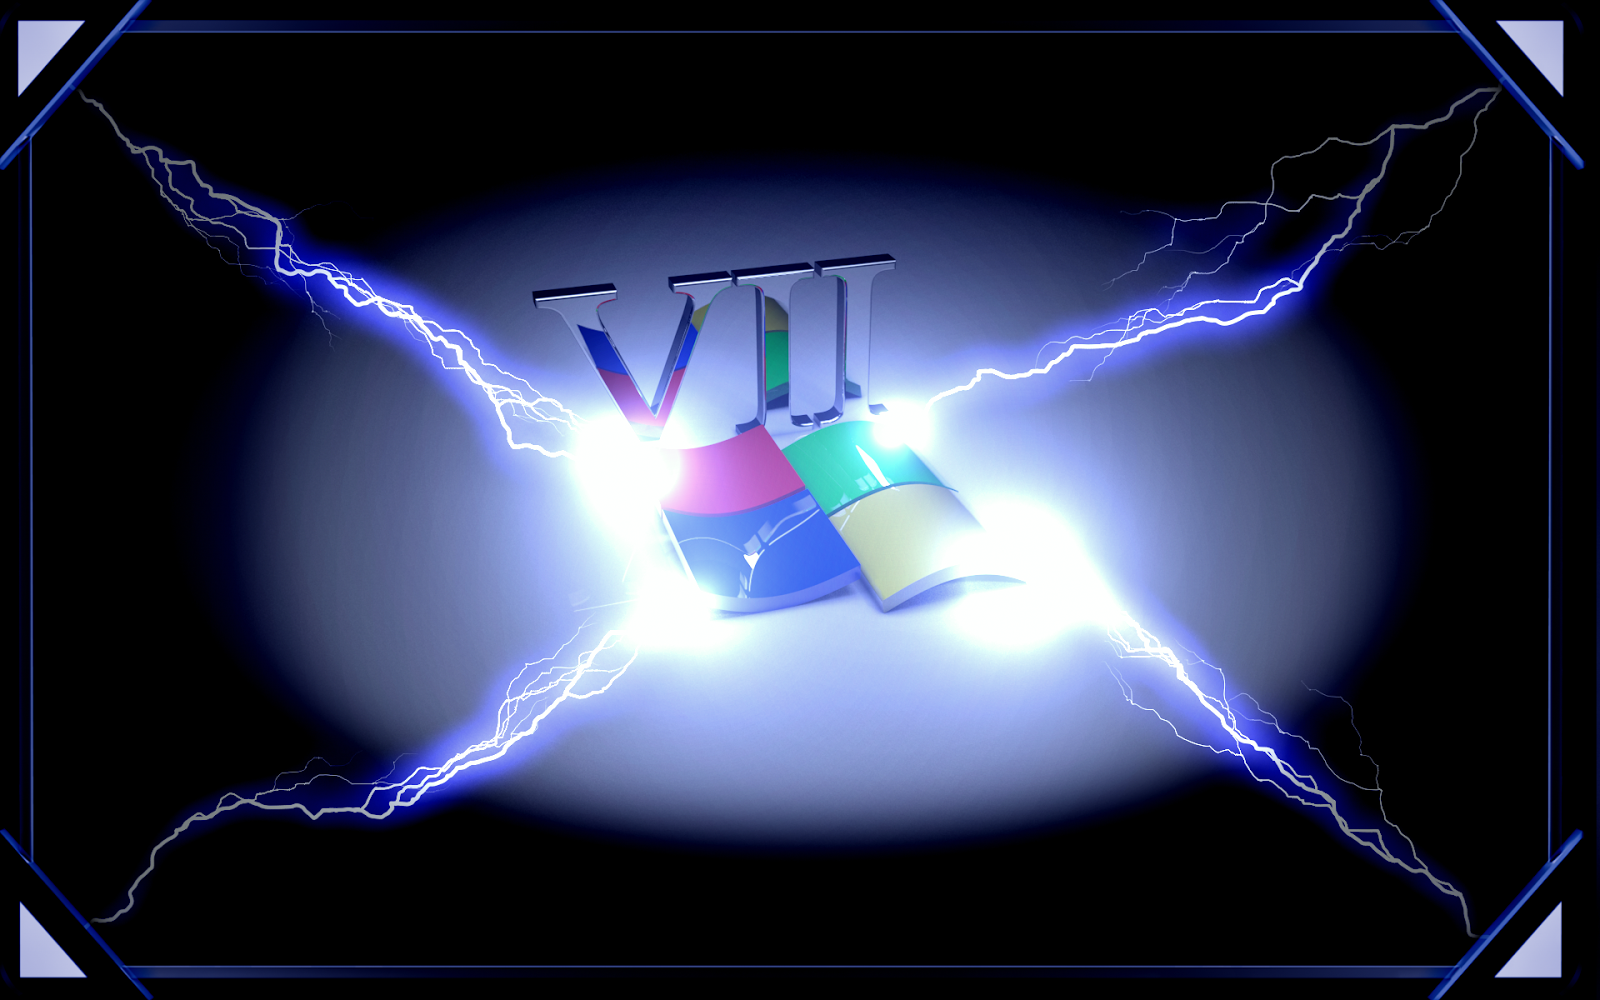 http://3.bp.blogspot.com/-GA0_4GnT4_g/UORFwea6NaI/AAAAAAAAFGY/m5a7B-rdDoY/s1600/windows_7_logo_desktop_wallpaper_by_shadownian-d4nj2xo+(1).png